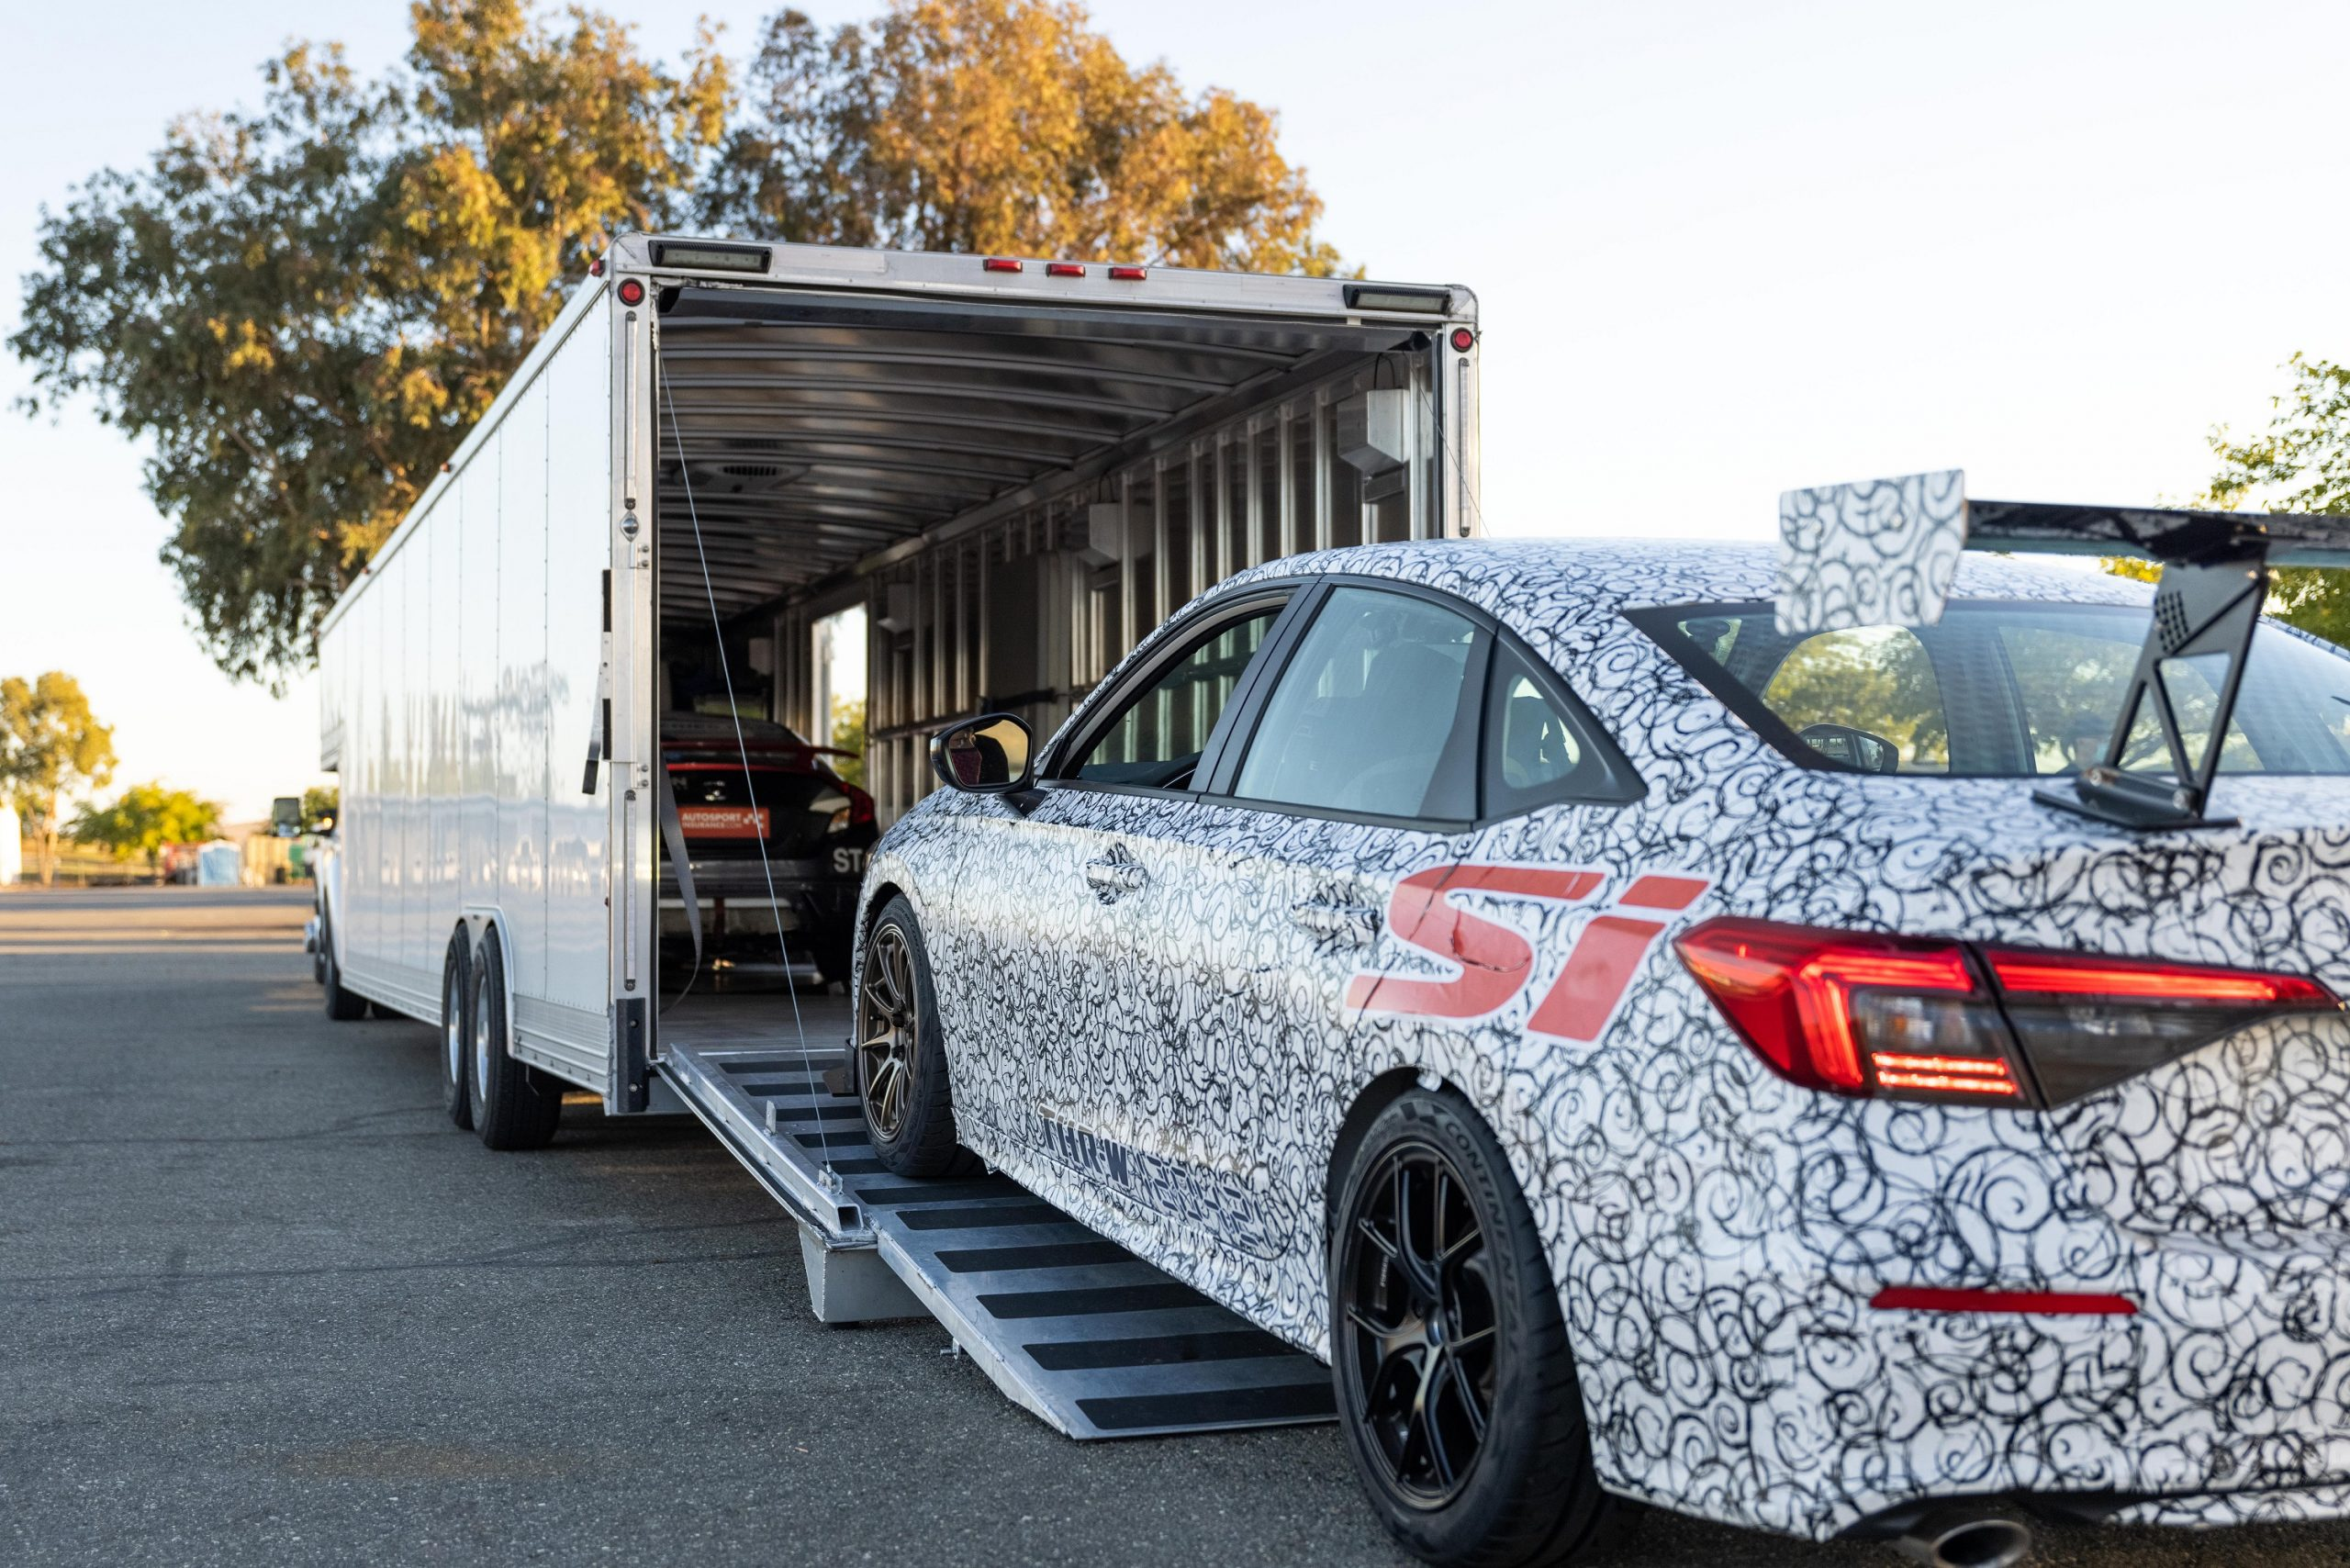 The 2022 Honda Civic Si gets loaded onto a trailer